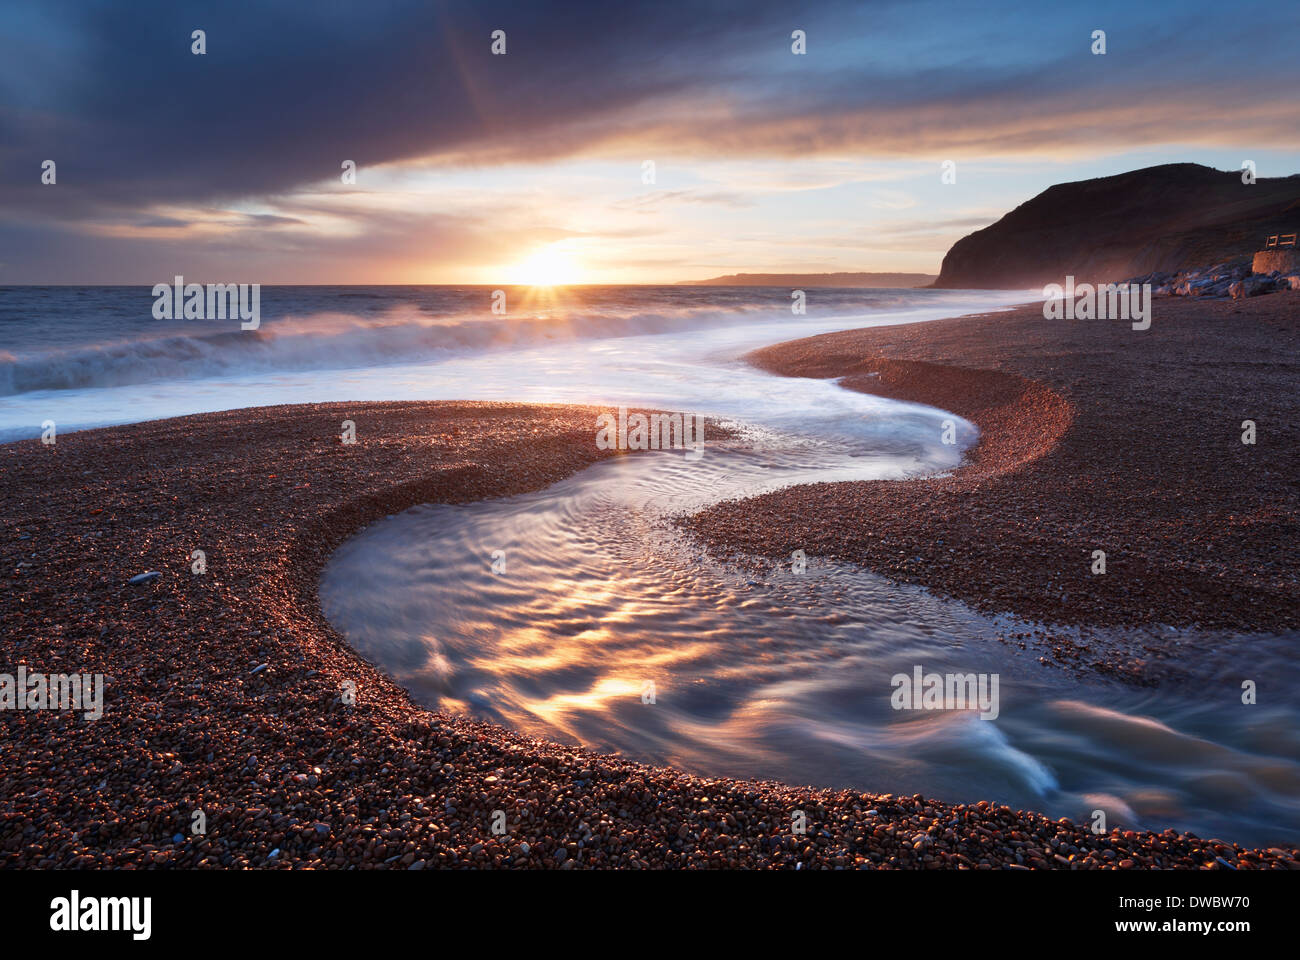 River Winniford flowing into the sea at Seatown Beach with the cliffs of Golden Cap in the Distance. Jurassic Coast. Dorset. UK. - Stock Image